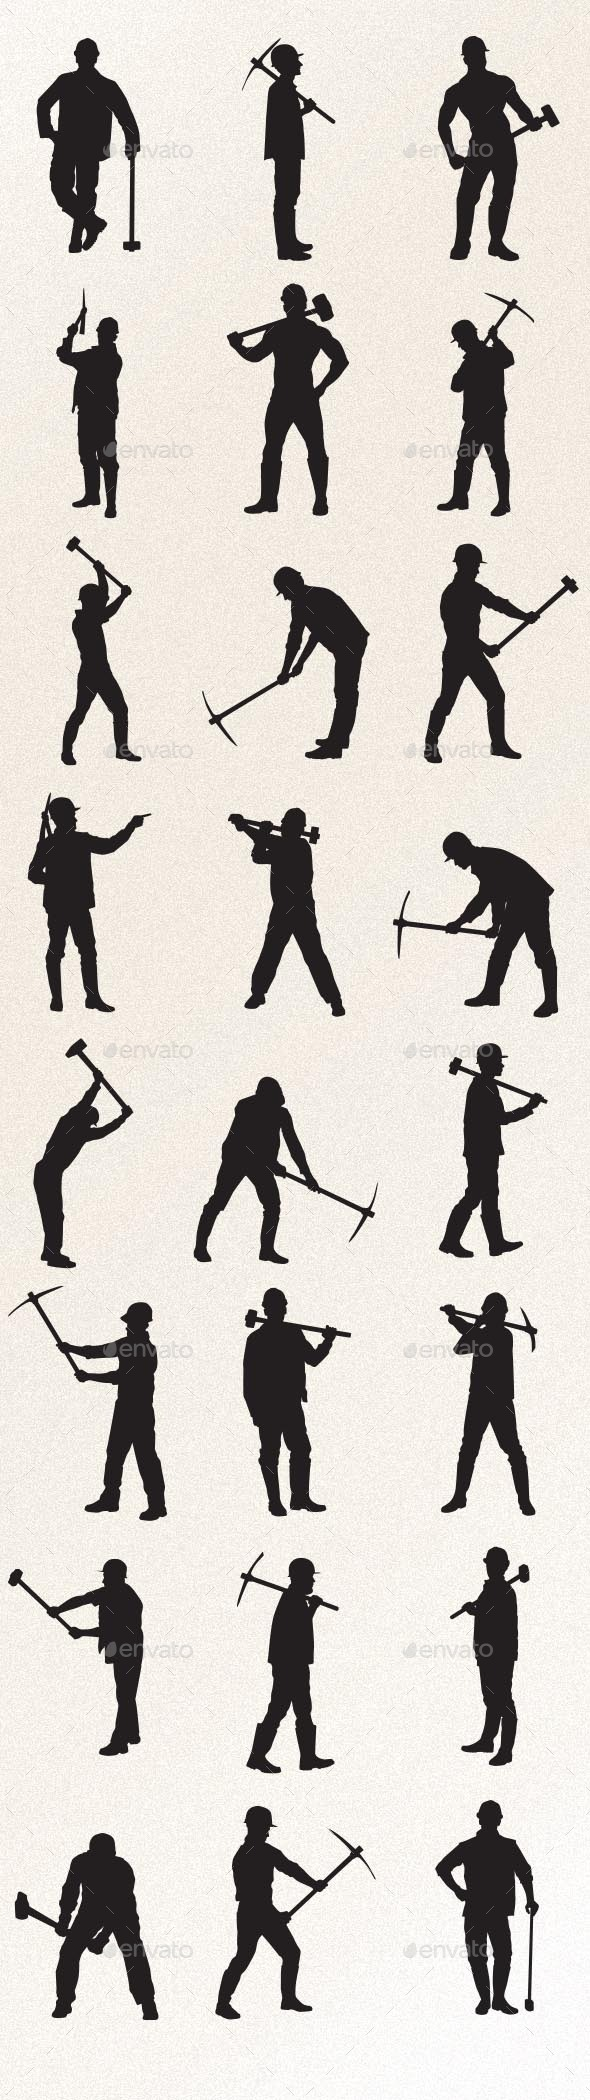 GraphicRiver Worker with Sledgehammer and Pickaxe 9220110